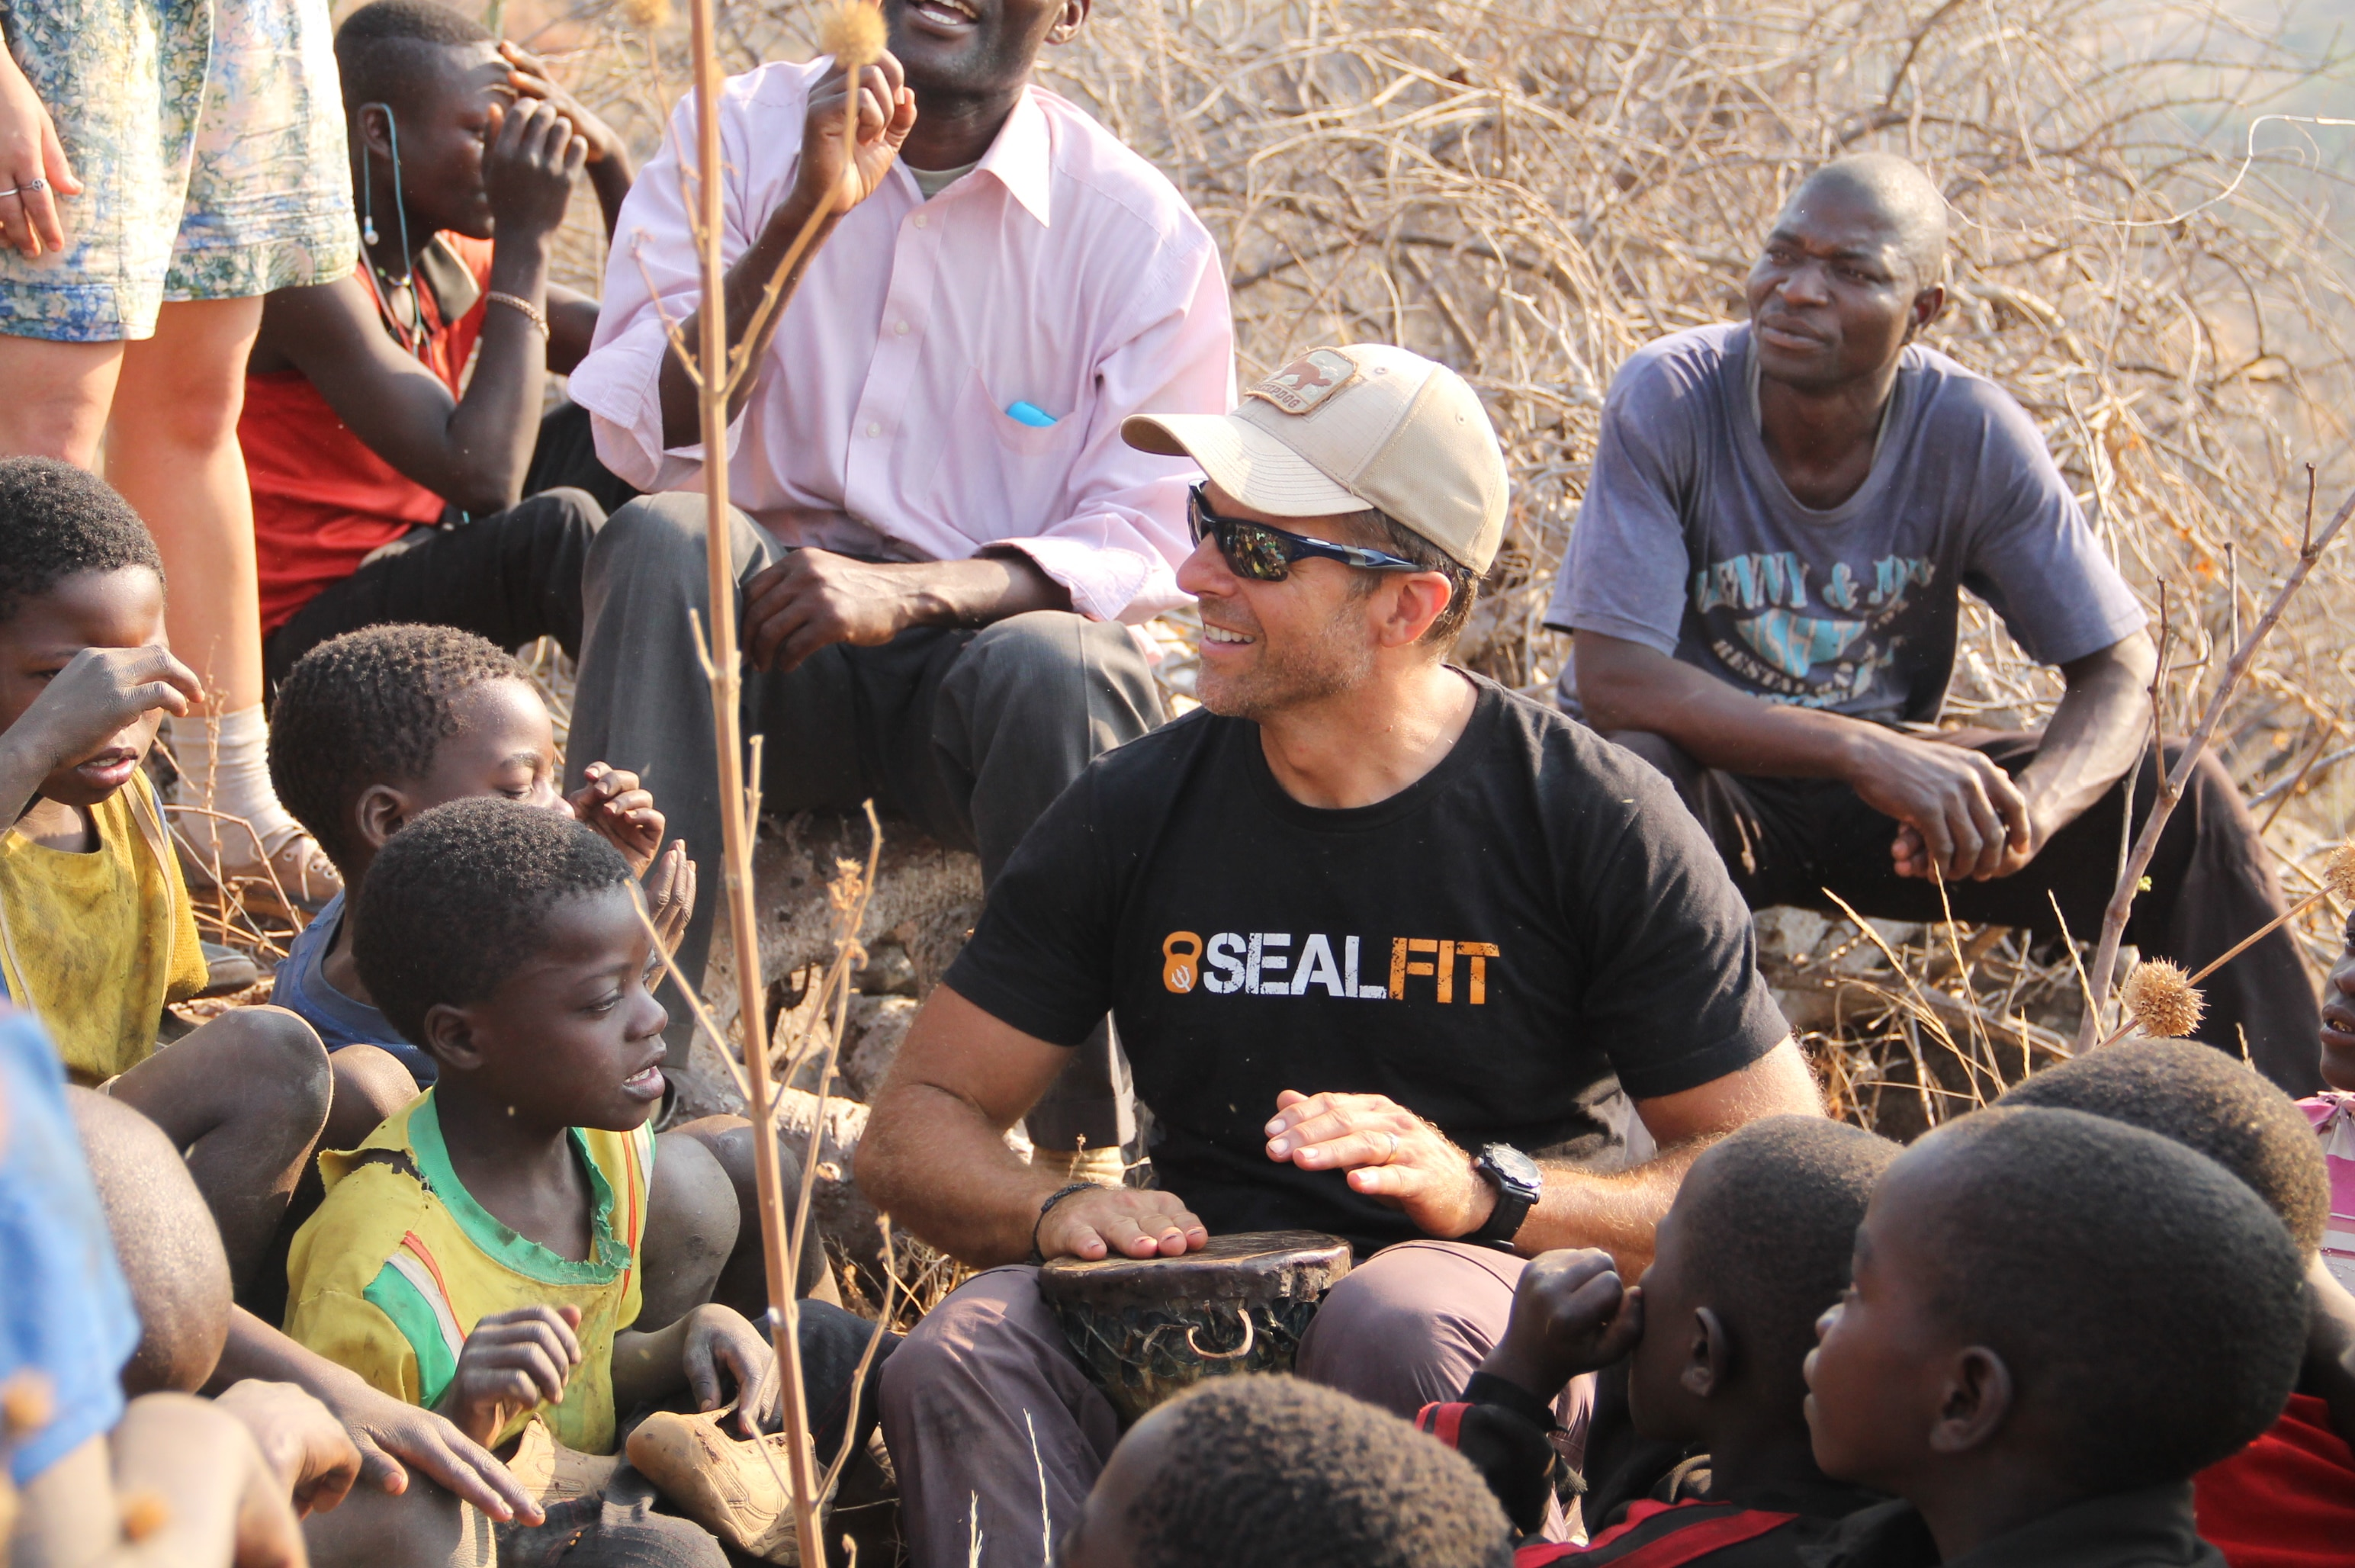 Jeff Grant Charity Work Malawi Face-to-Face Project